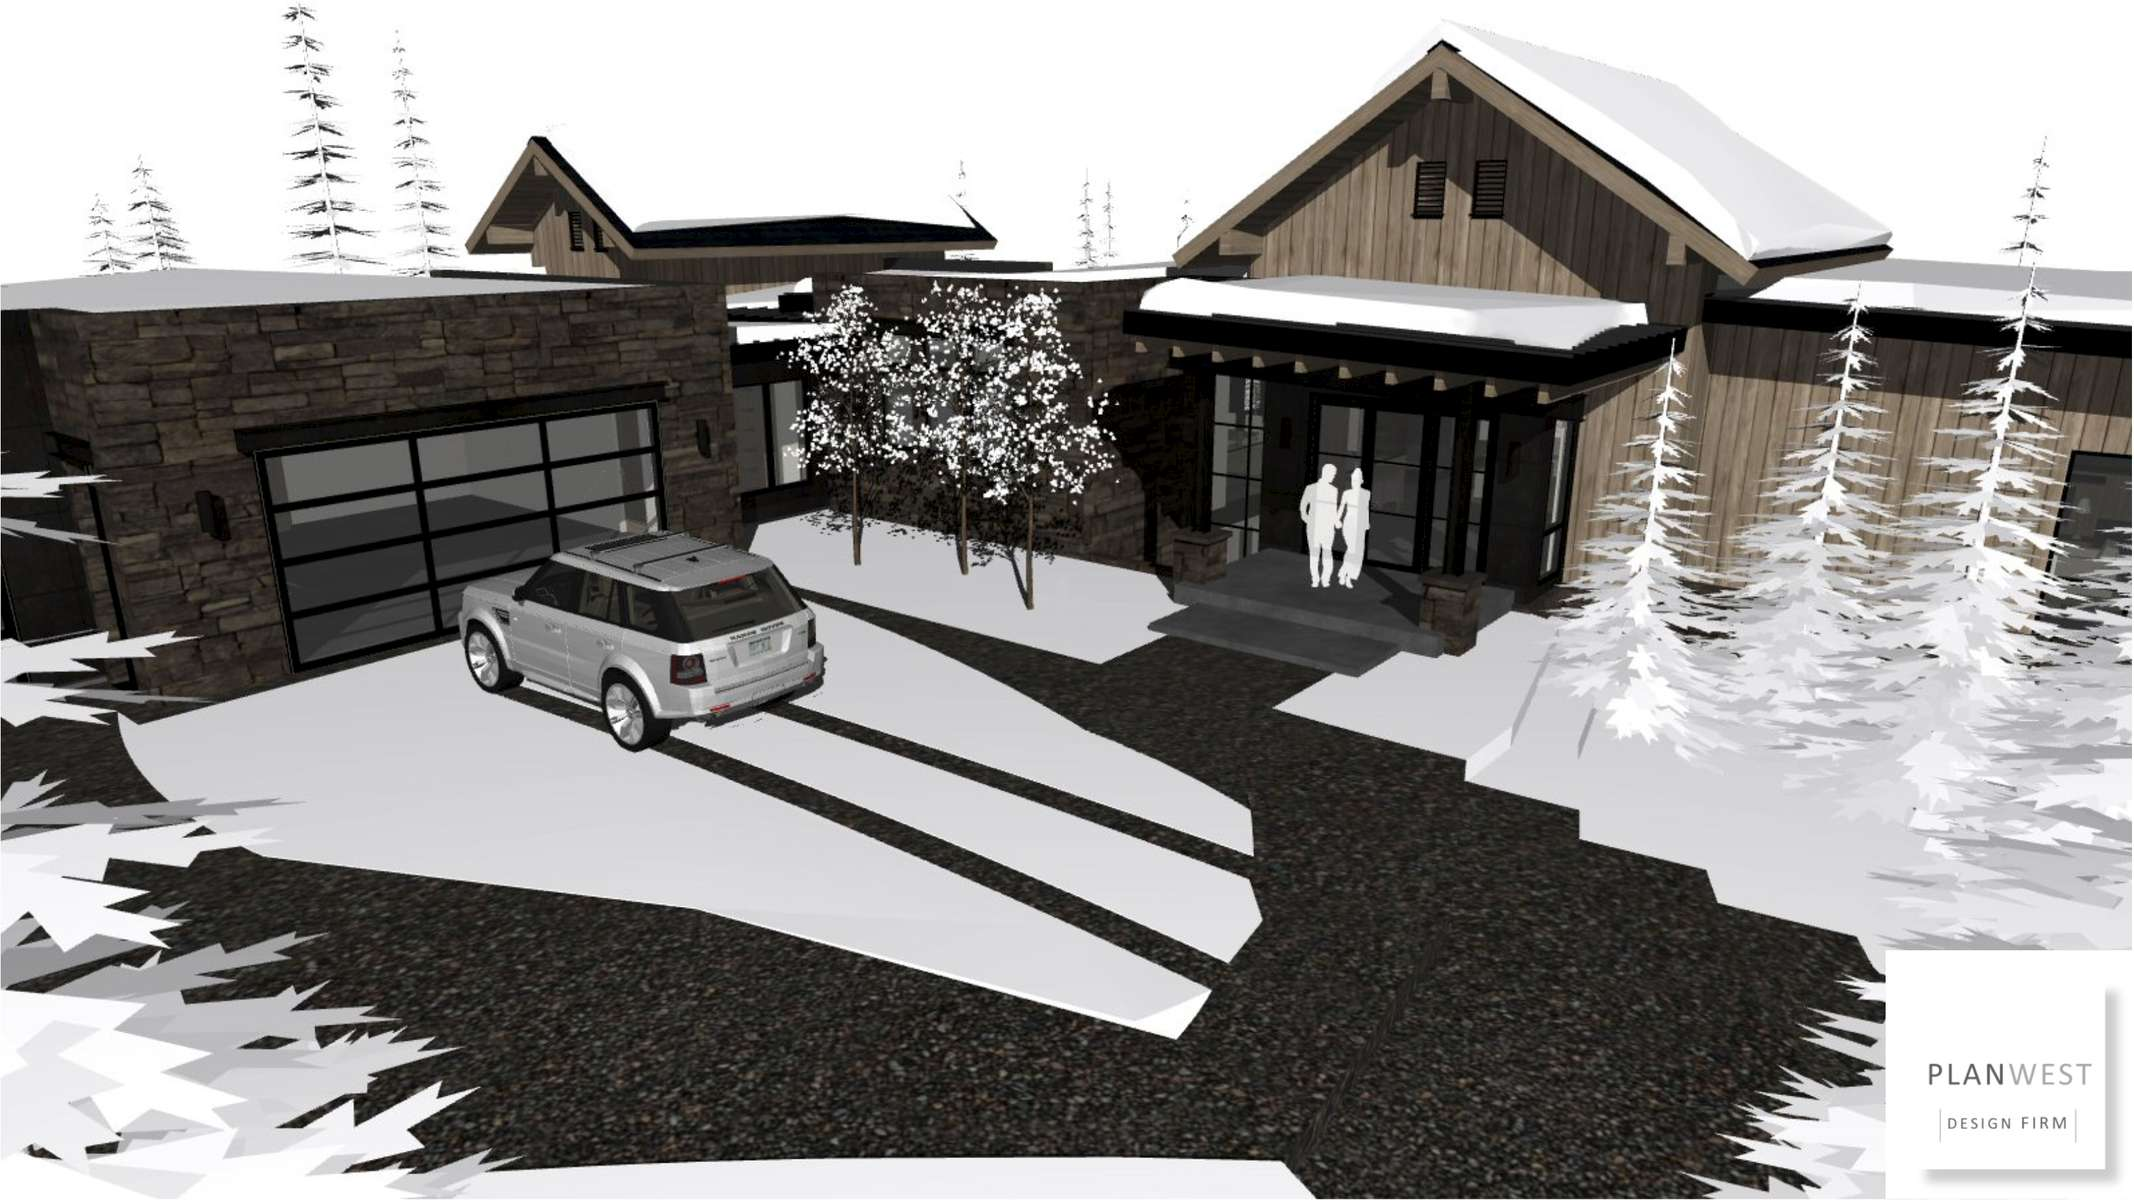 Plan-West-Design-Firm_Projects-in-process-1534